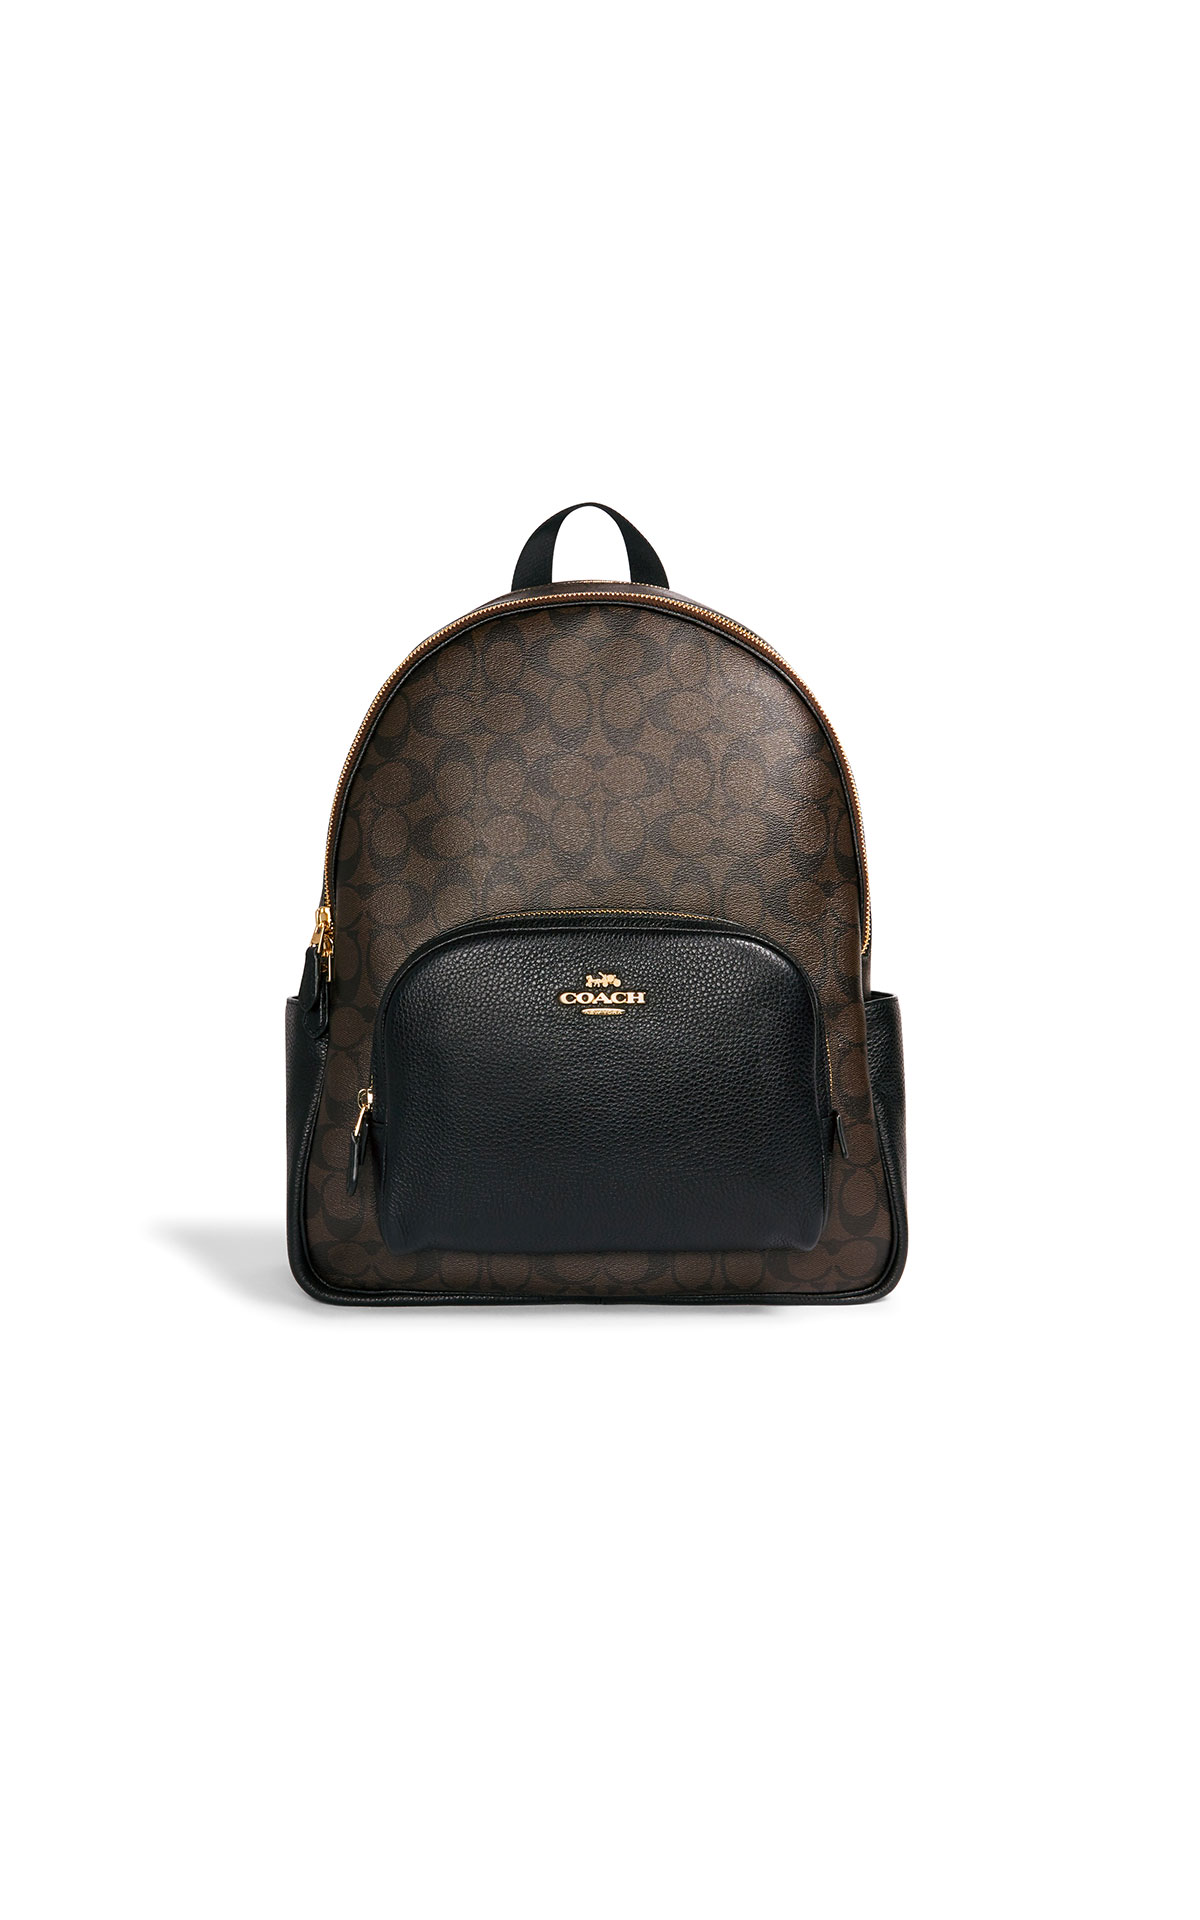 Coach signature large court backpack